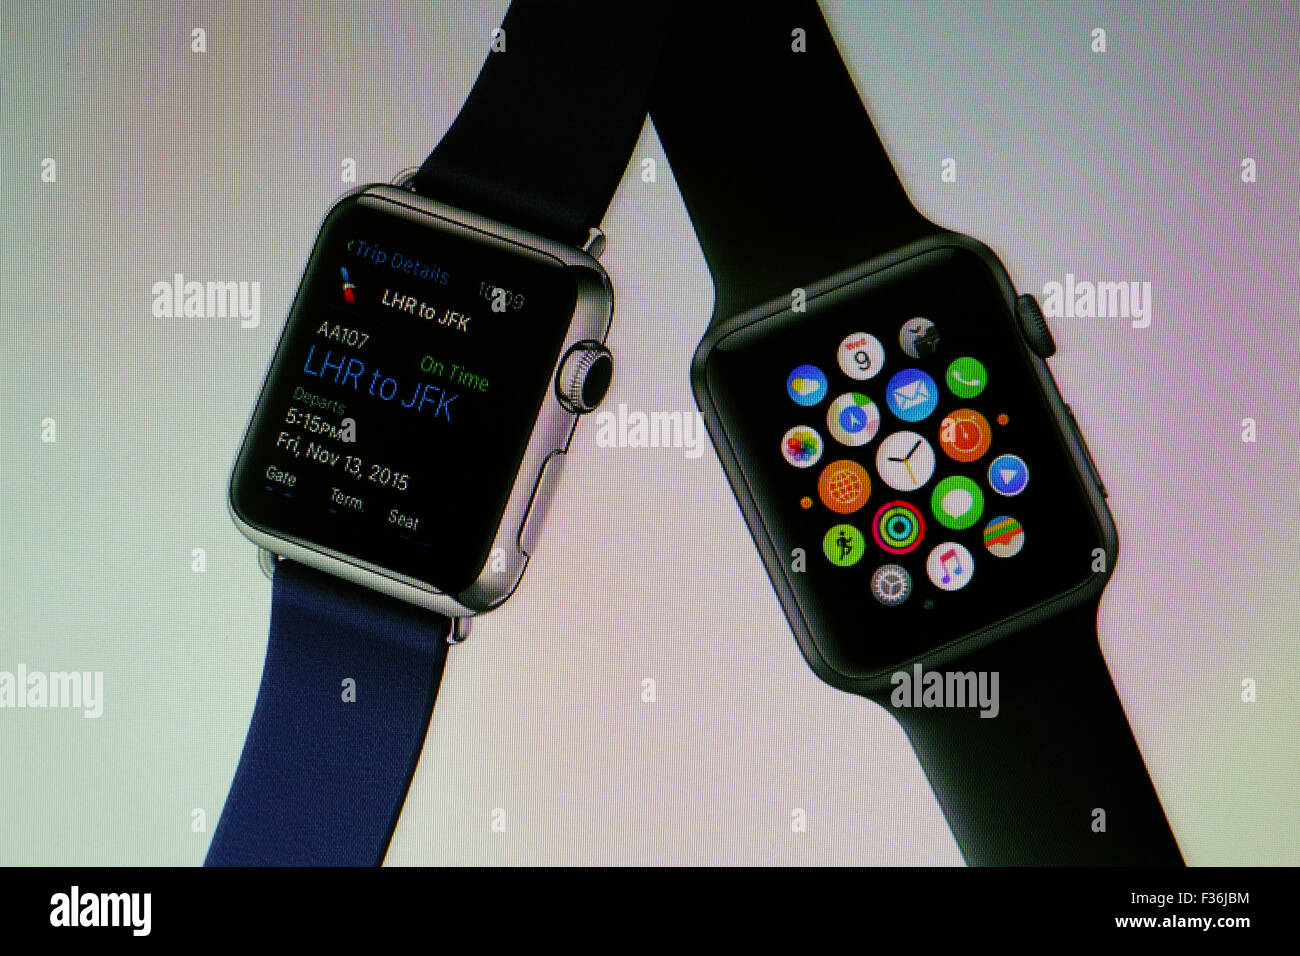 Apple,watches,wearable,technology,gadget,Apps - Stock Image